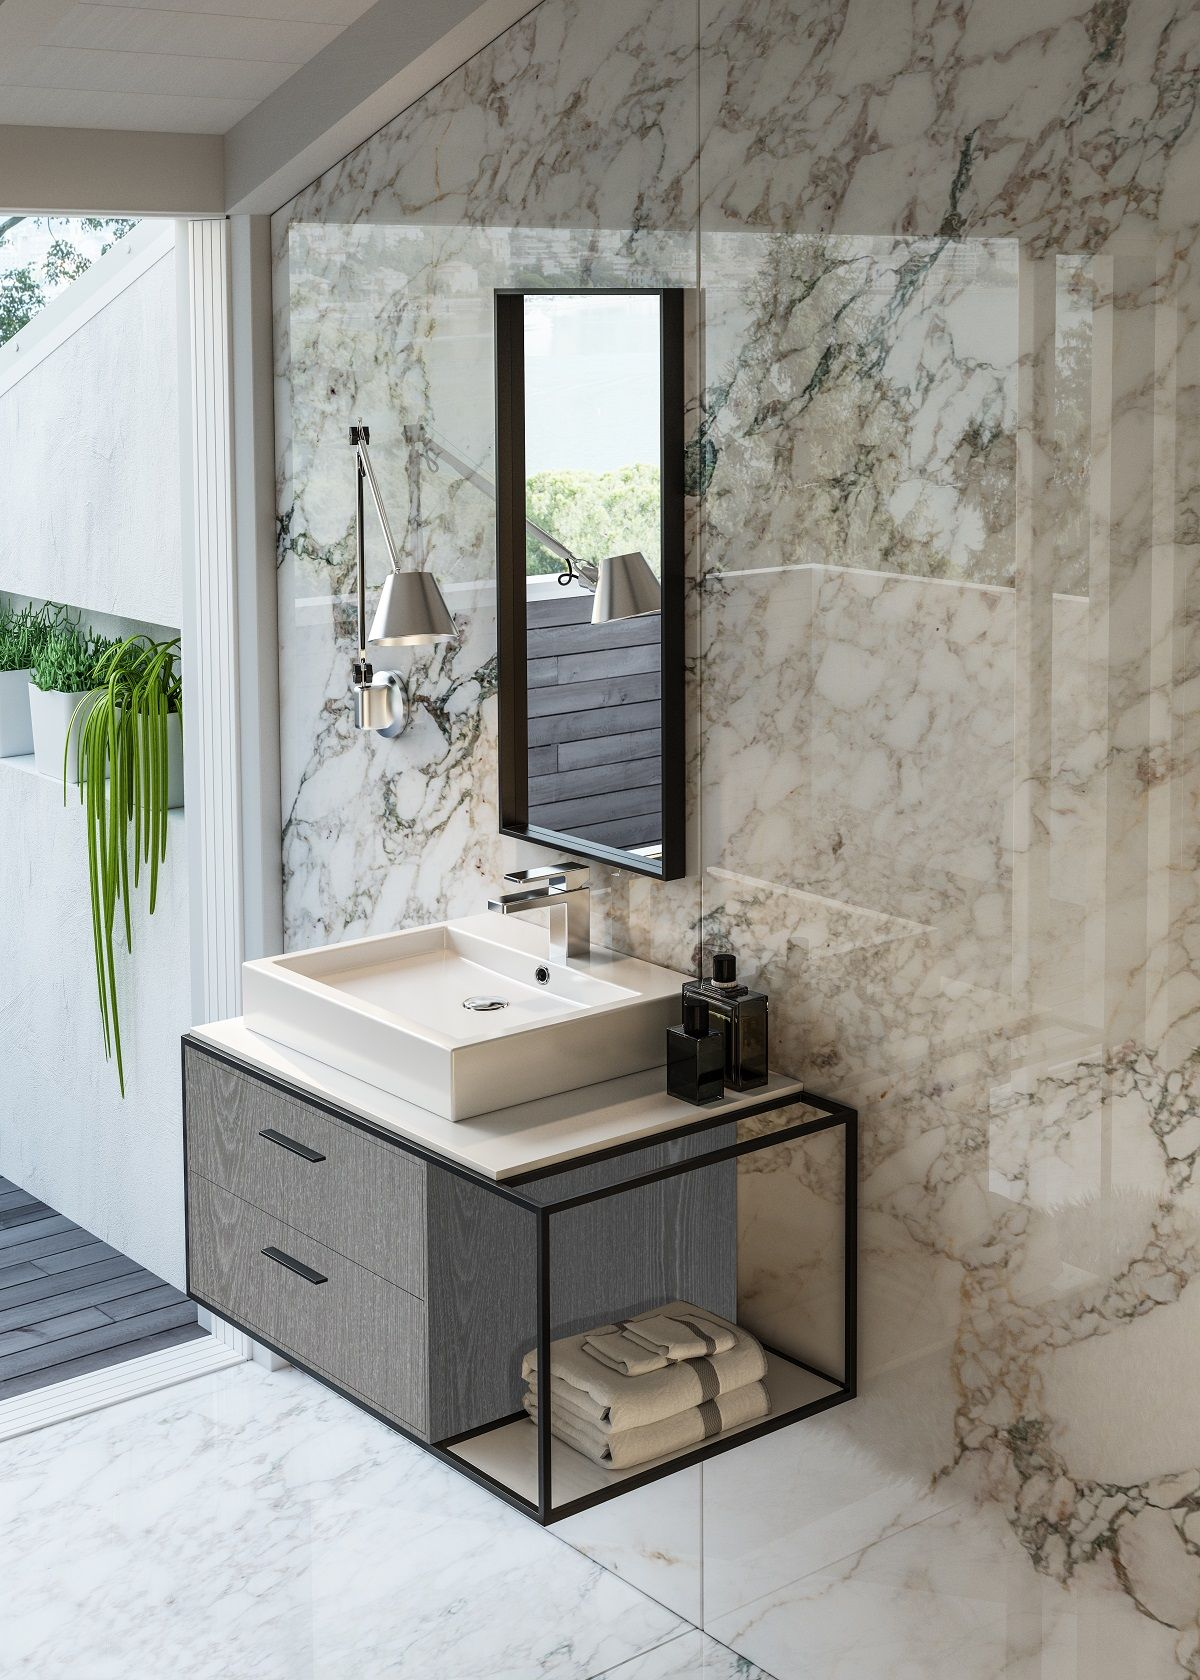 Bathroom Cabinets | Mission West Kitchen and Bath | Bathroom ...